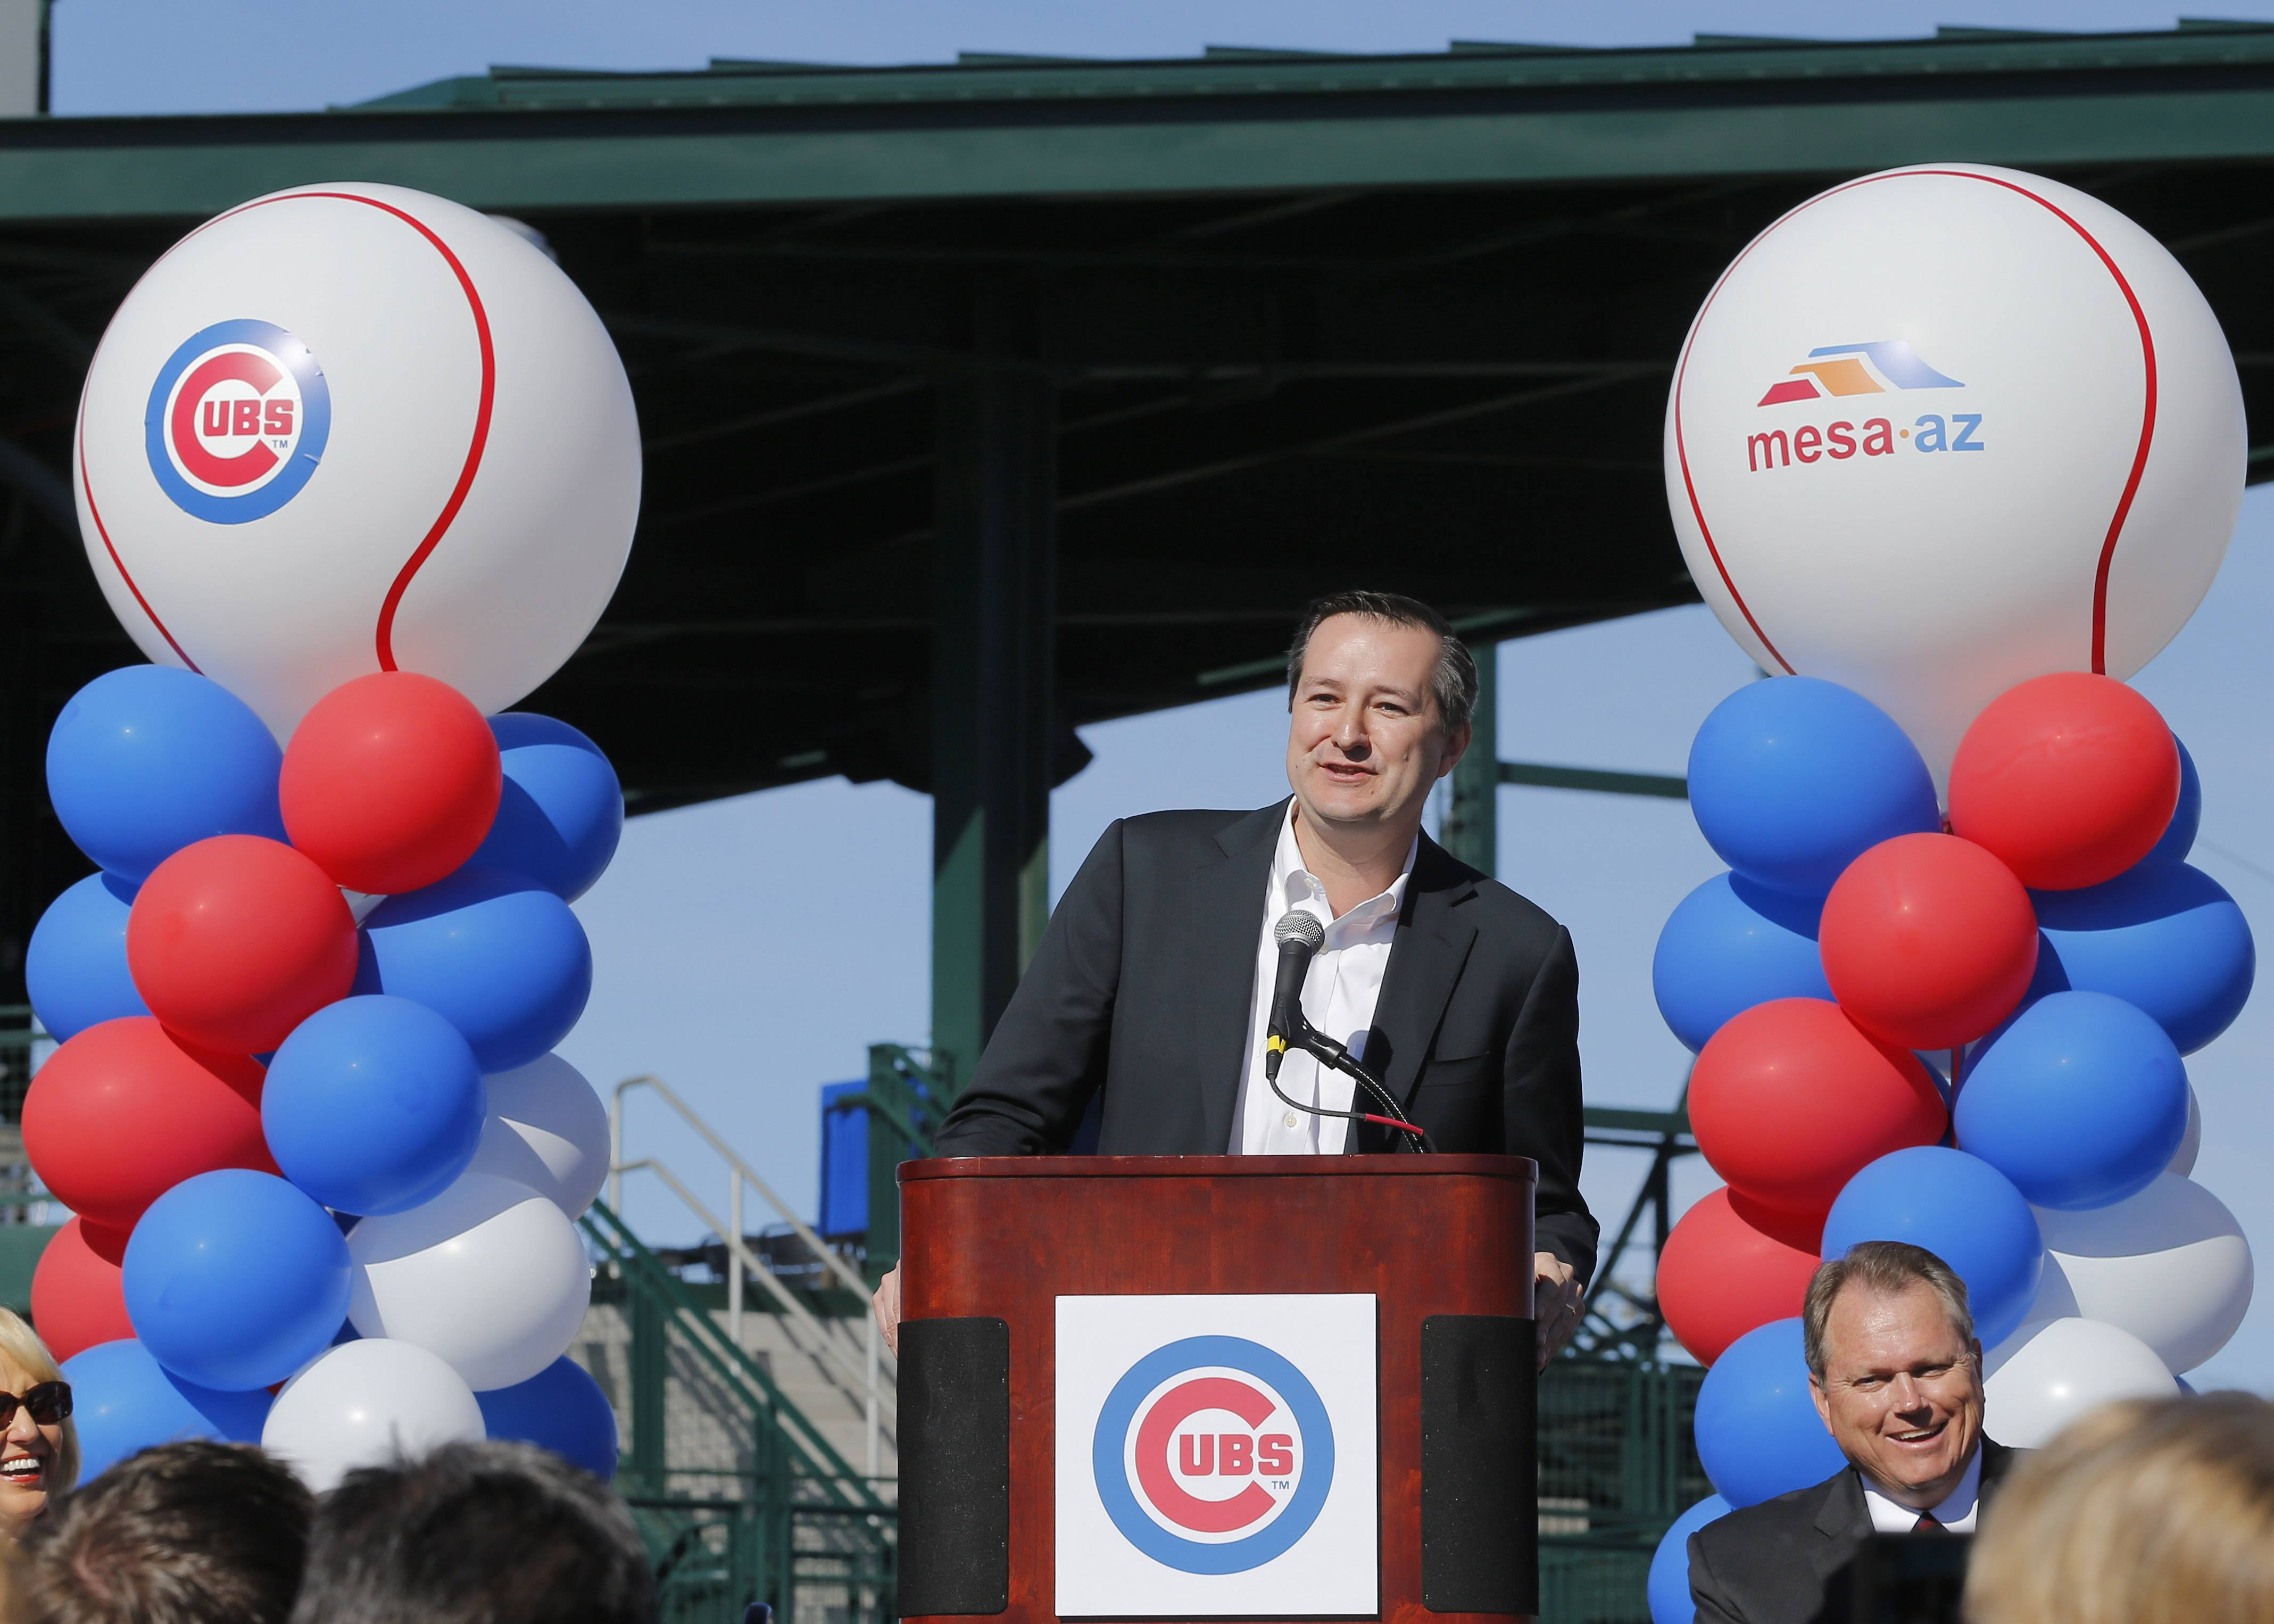 Chicago Cubs Chairman Tom Ricketts speaks during a ceremony to unveil the Cubs' new Cactus League spring training baseball facility, Wednesday, Feb. 12, 2014, in Mesa, Ariz.